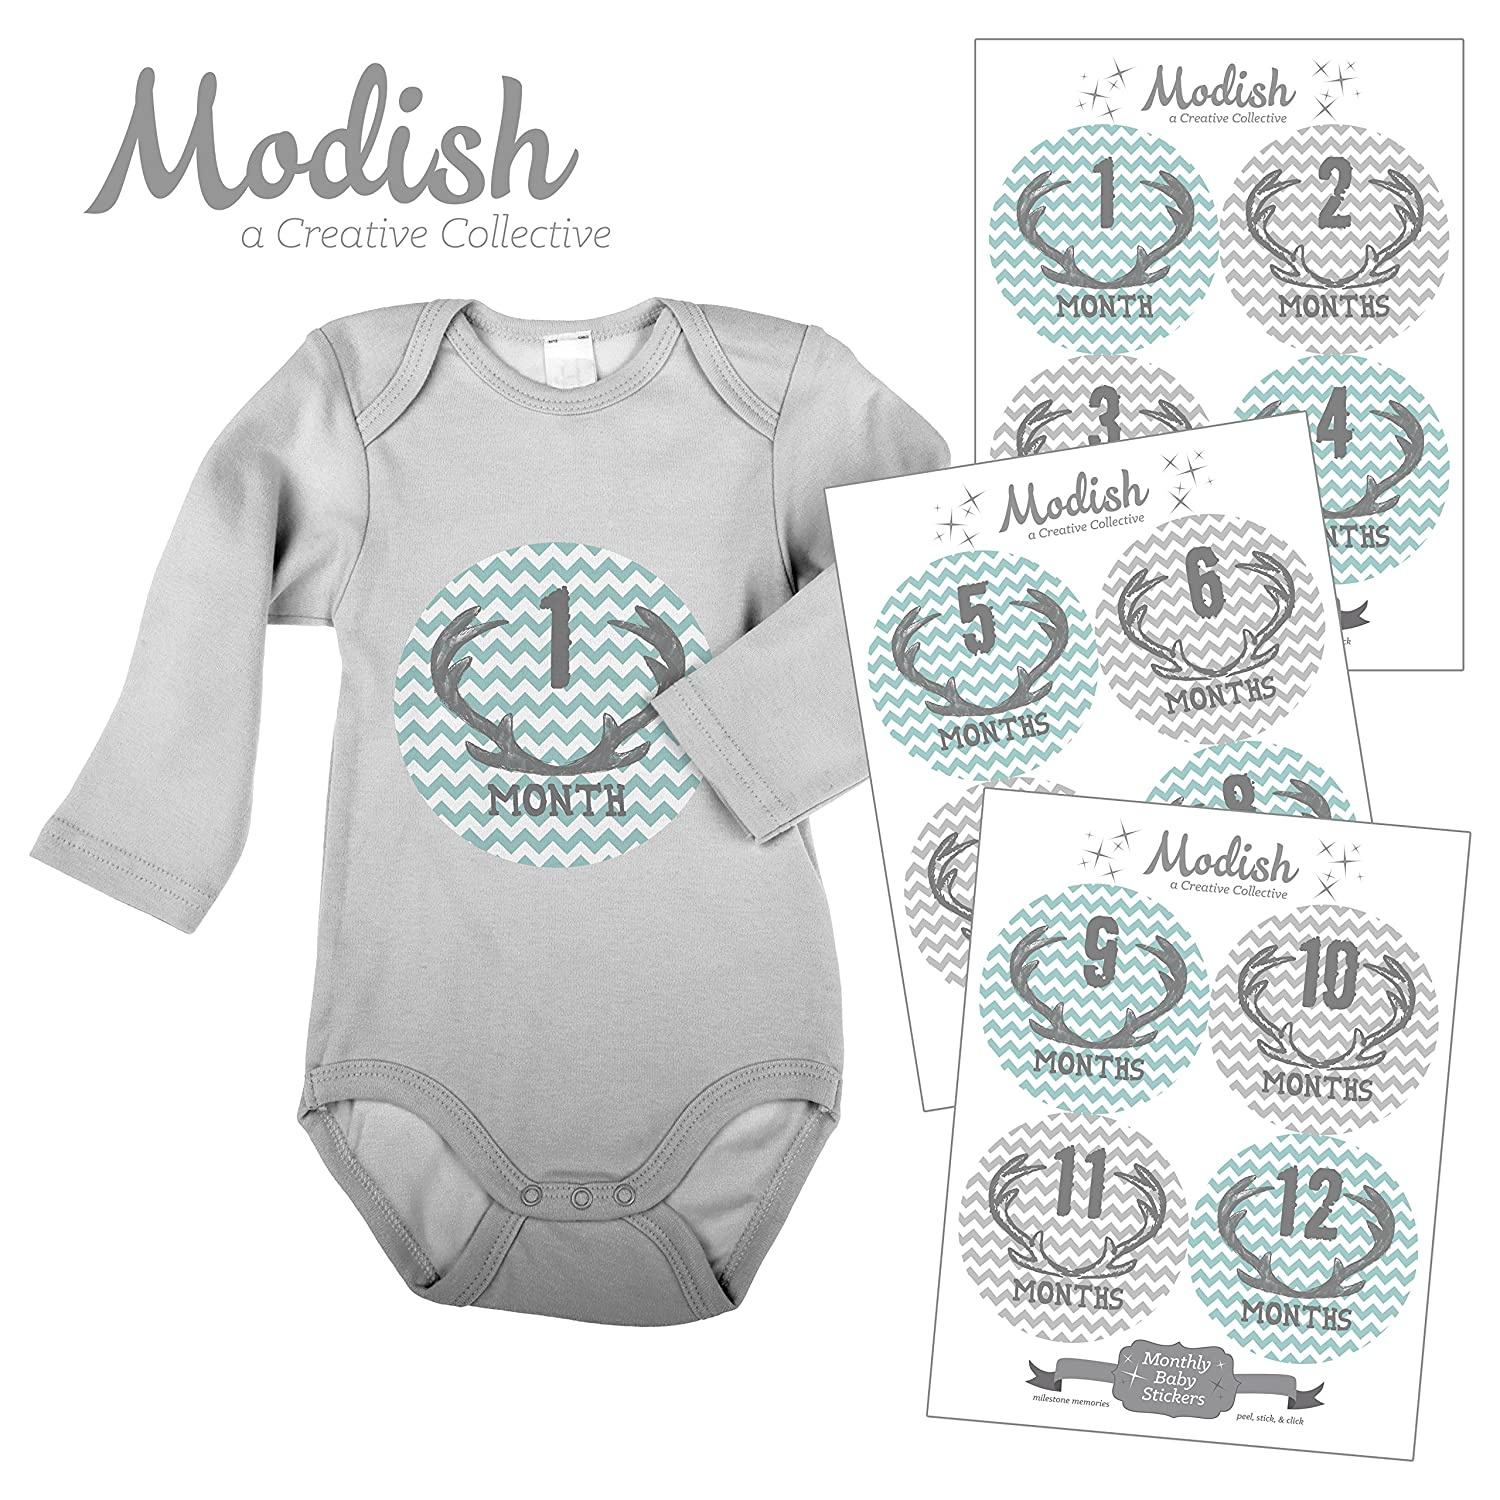 12 Monthly Baby Stickers, Deer Antlers, Boy, Baby Belly Stickers, Monthly Onesie Stickers, First Year Stickers Months 1-12, Gray, Teal, Chevron, Deer Antlers, Woodland, Boy MyTown Marketing Group Inc. MC0006